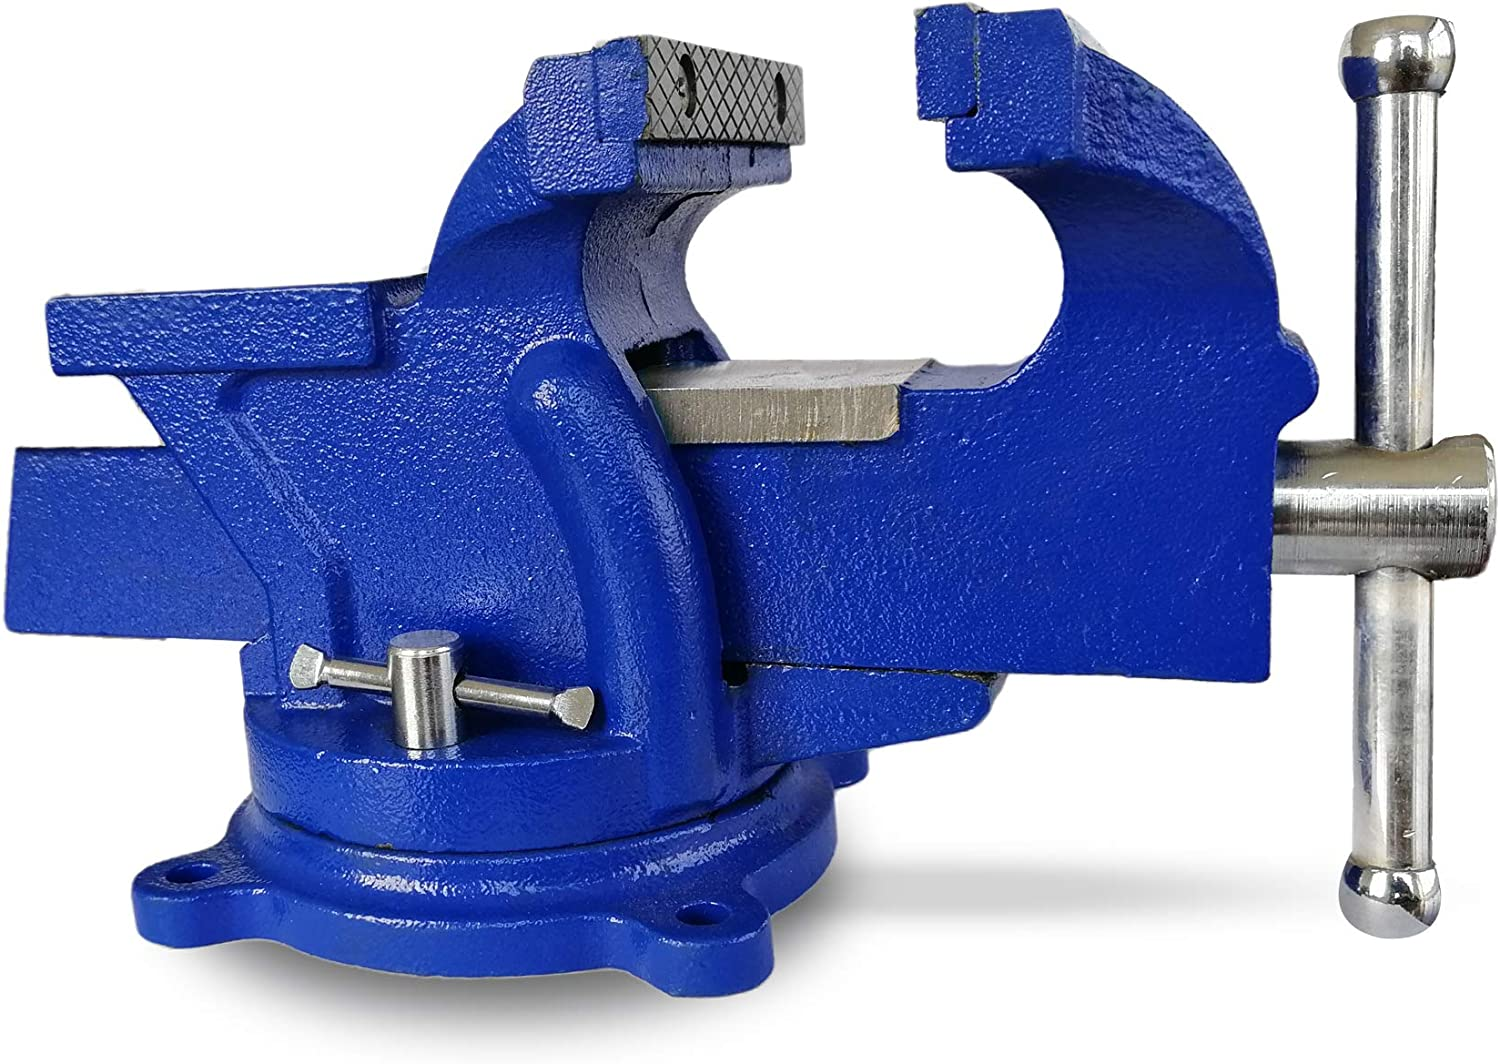 LiusTech Bench Vise 5 Inch Heavy Duty 360-Degree Swivel Base and Anvil Bench Vice